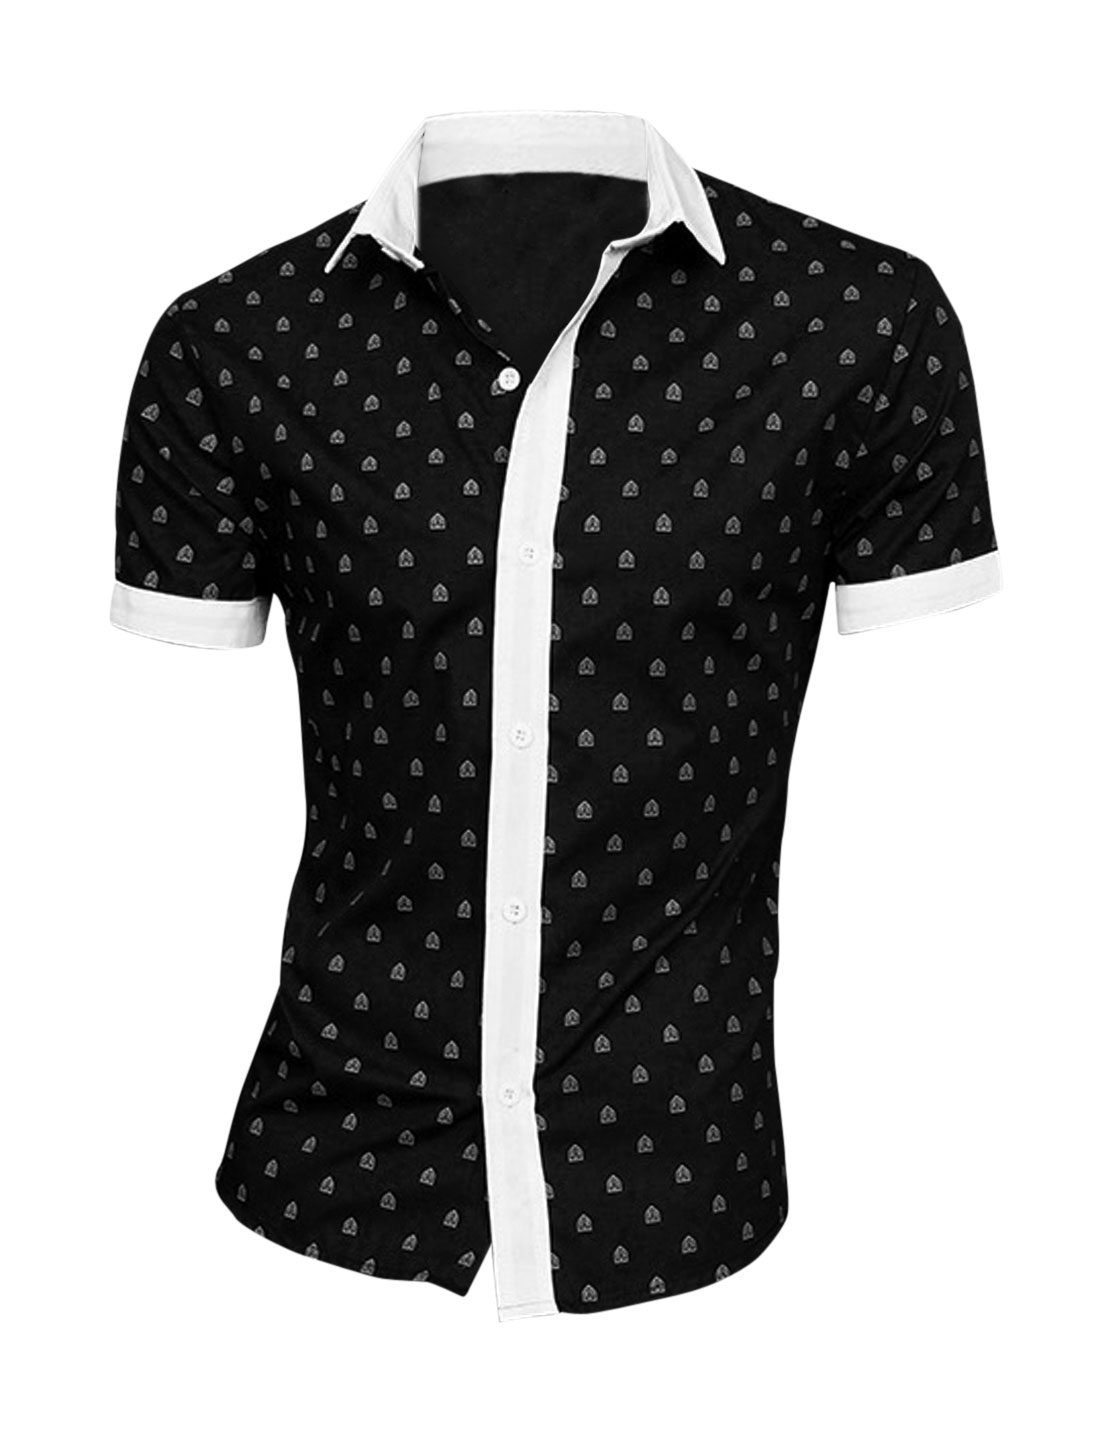 Men Point Collar Shield Pattern Patching Stylish Shirt Black M